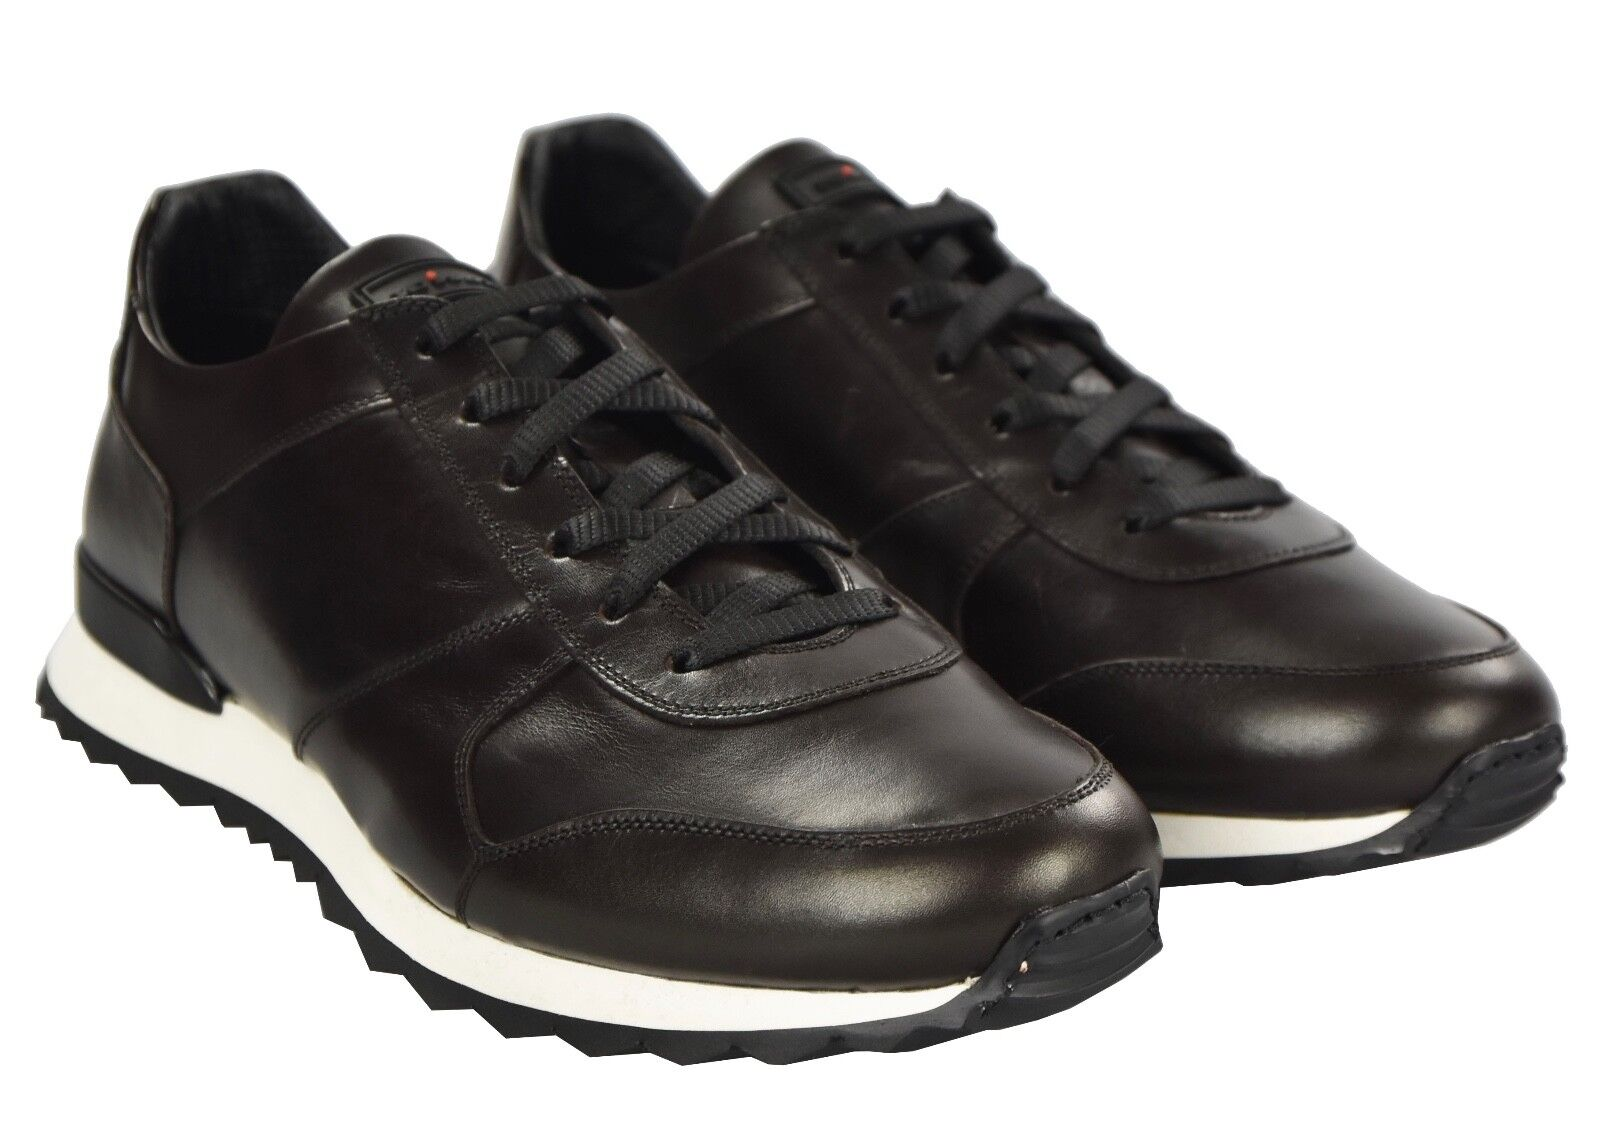 NEW KITON SHOES SNEAKERS 100% LEATHER SIZE 10 US 43 KSCW8